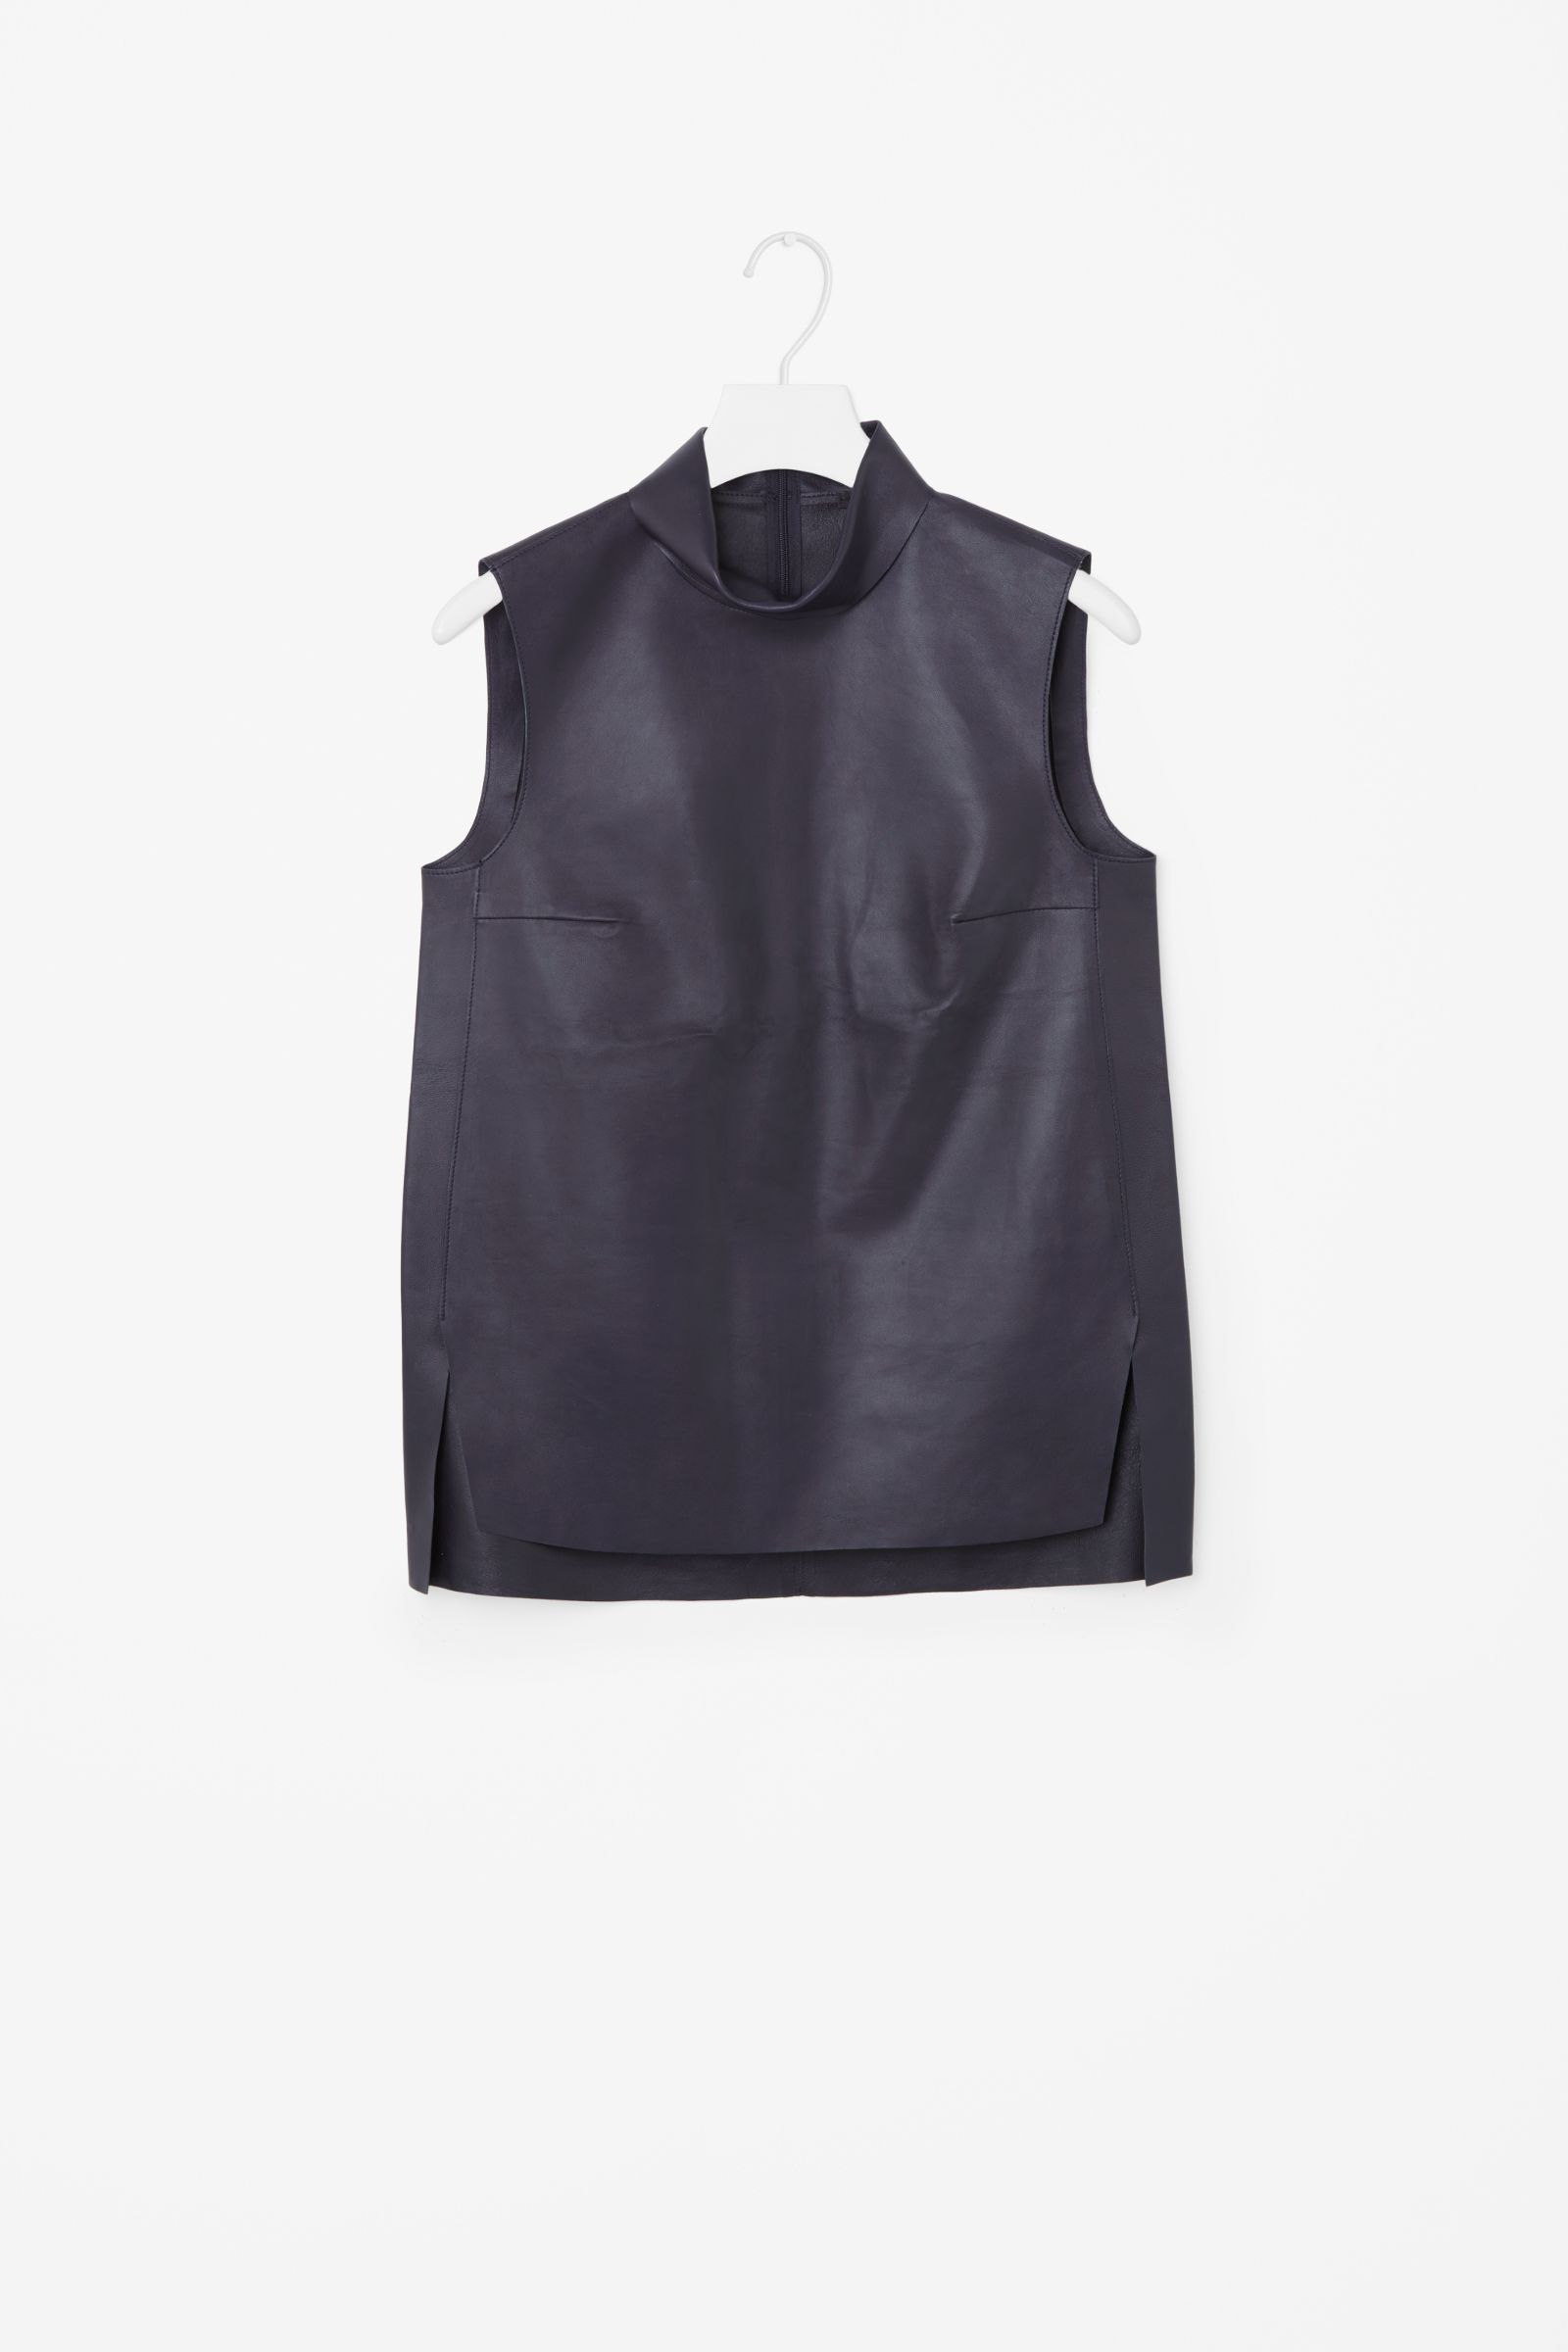 3ae1d5a9de7d55 COS image 4 of Sleeveless leather top in Navy